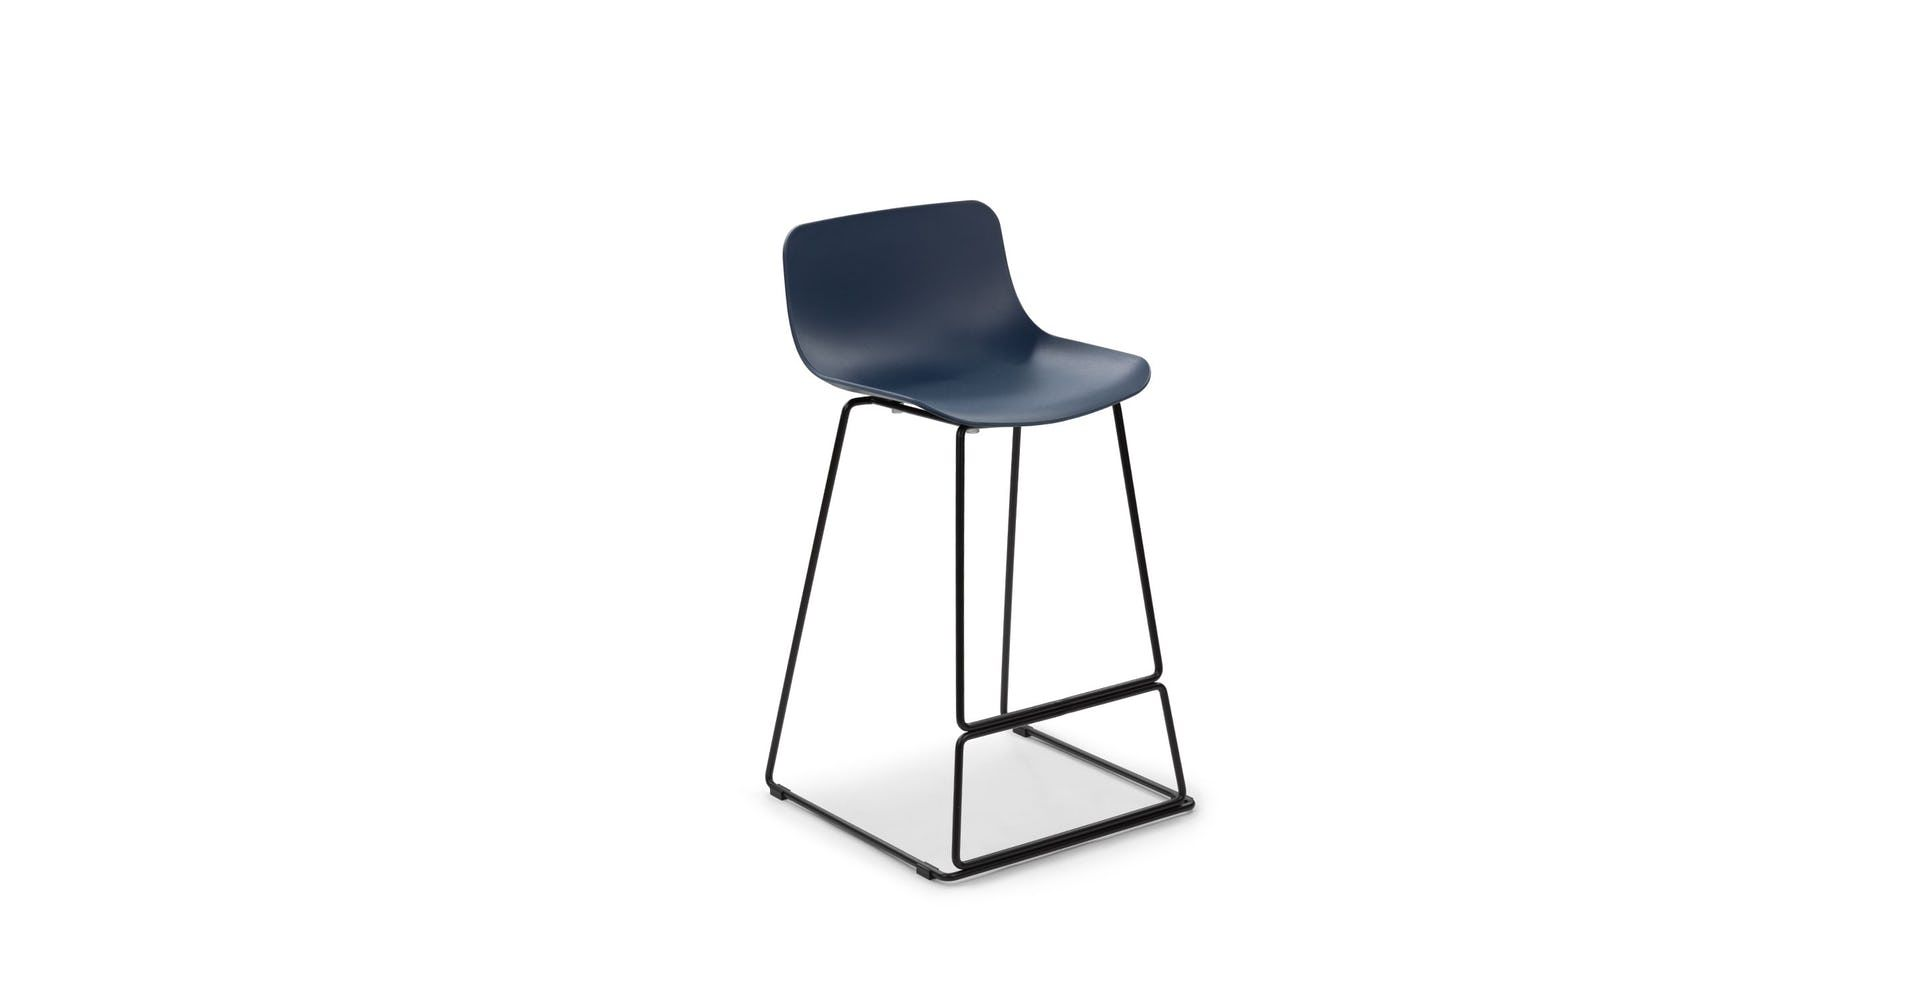 Anco Baya Blue Counter Stool Black Counter Stools Black Bar